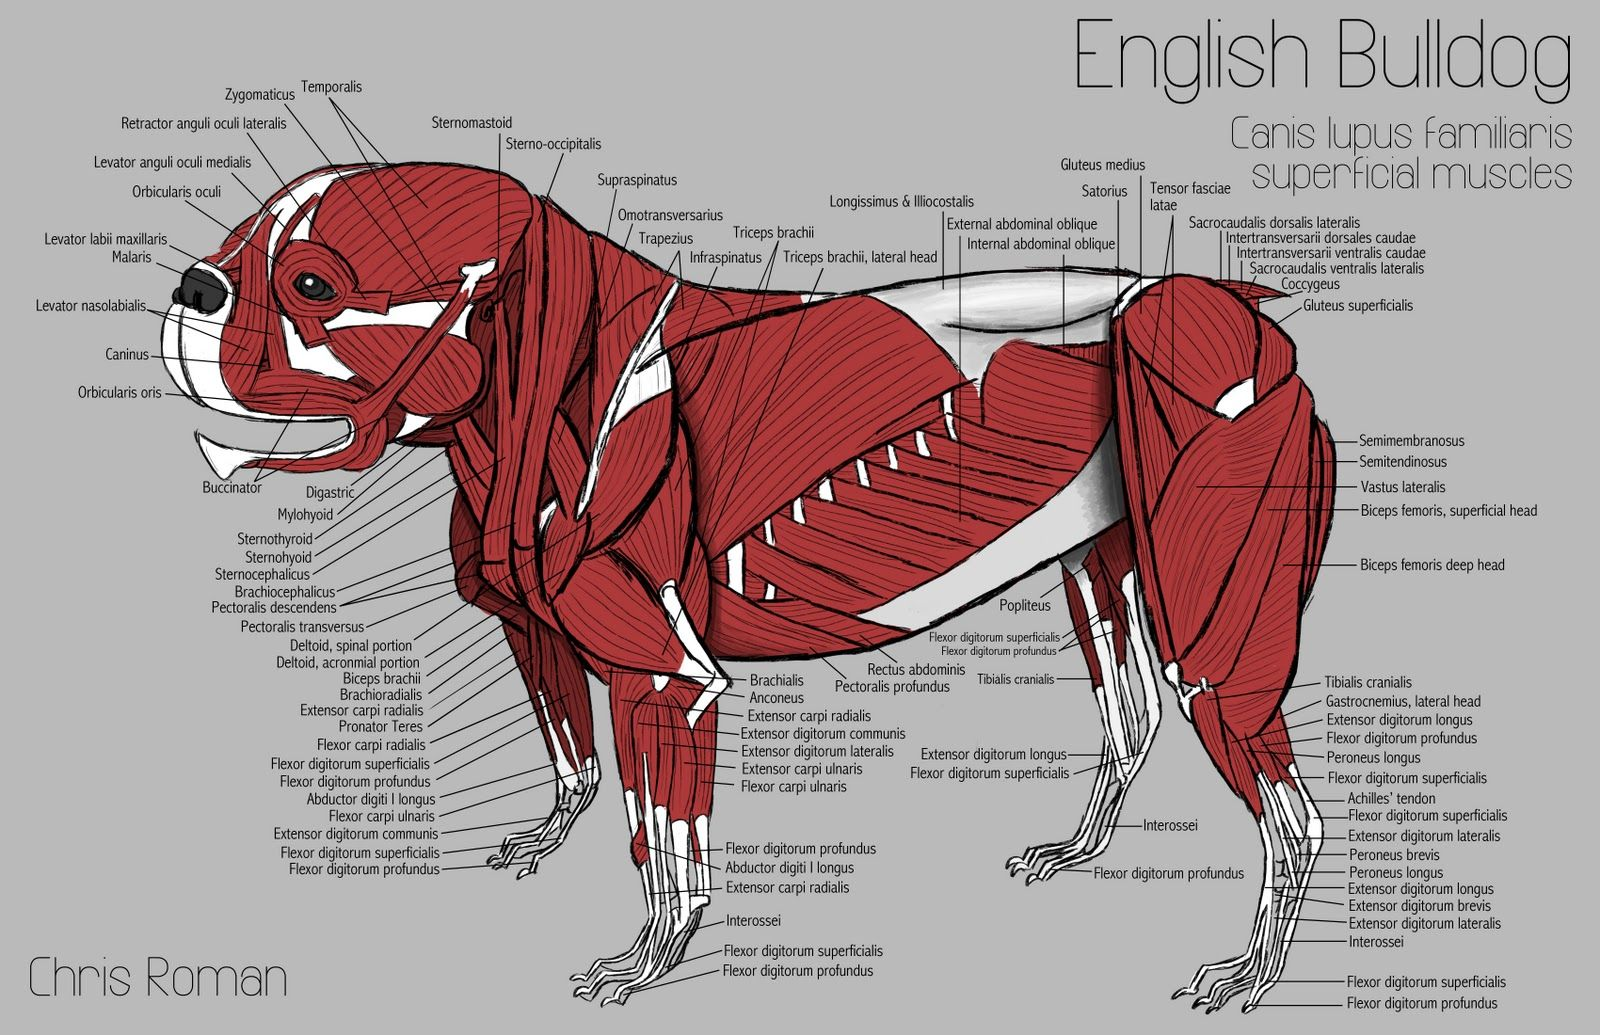 Pin by ragh on rigging | Pinterest | Anatomy, Animal anatomy and Animal